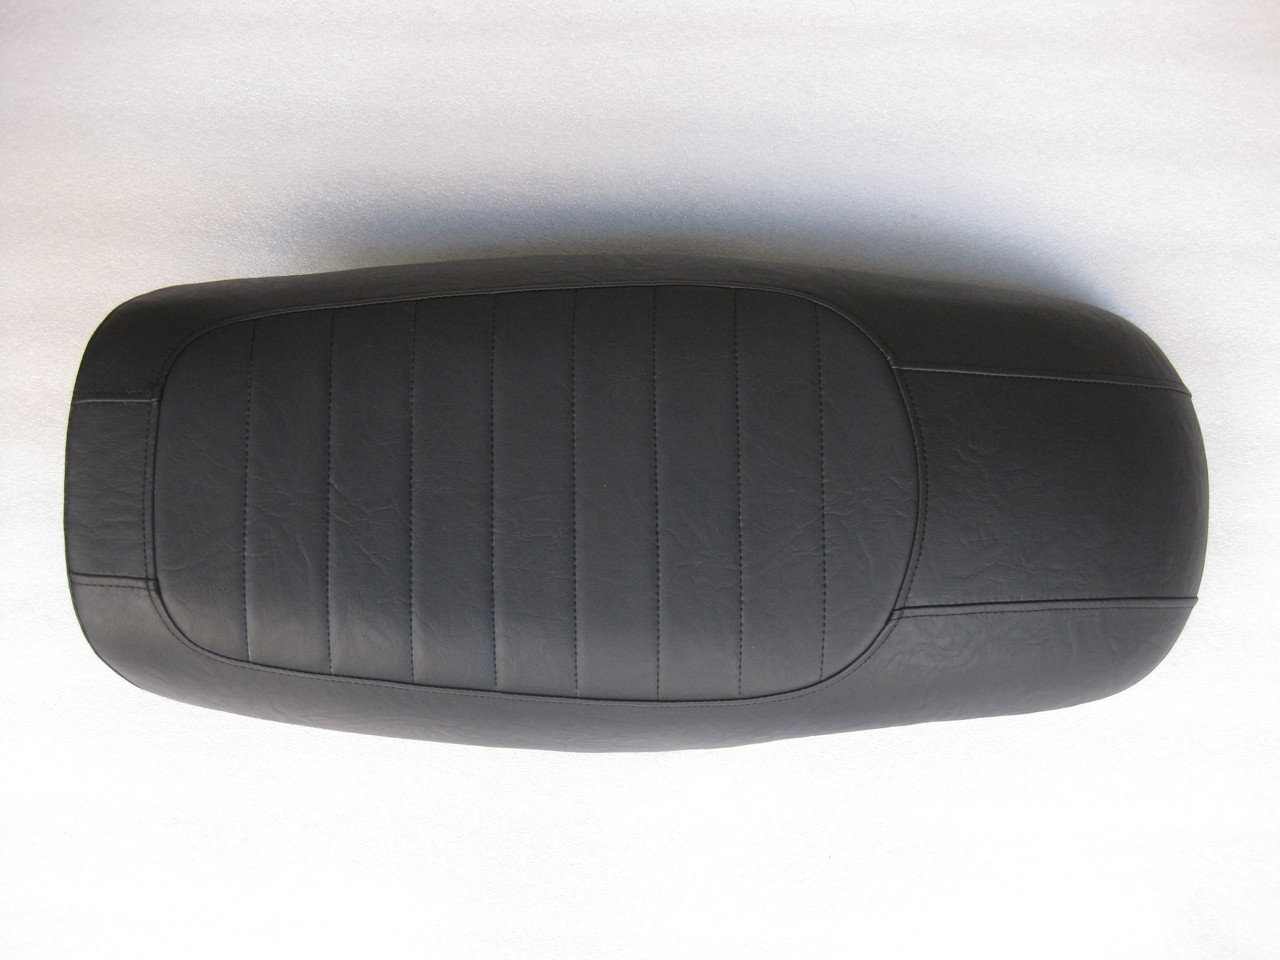 1980 - 1983 Honda GL1100 Goldwing Cafe Racer Complete Motorcycle Seat #4234